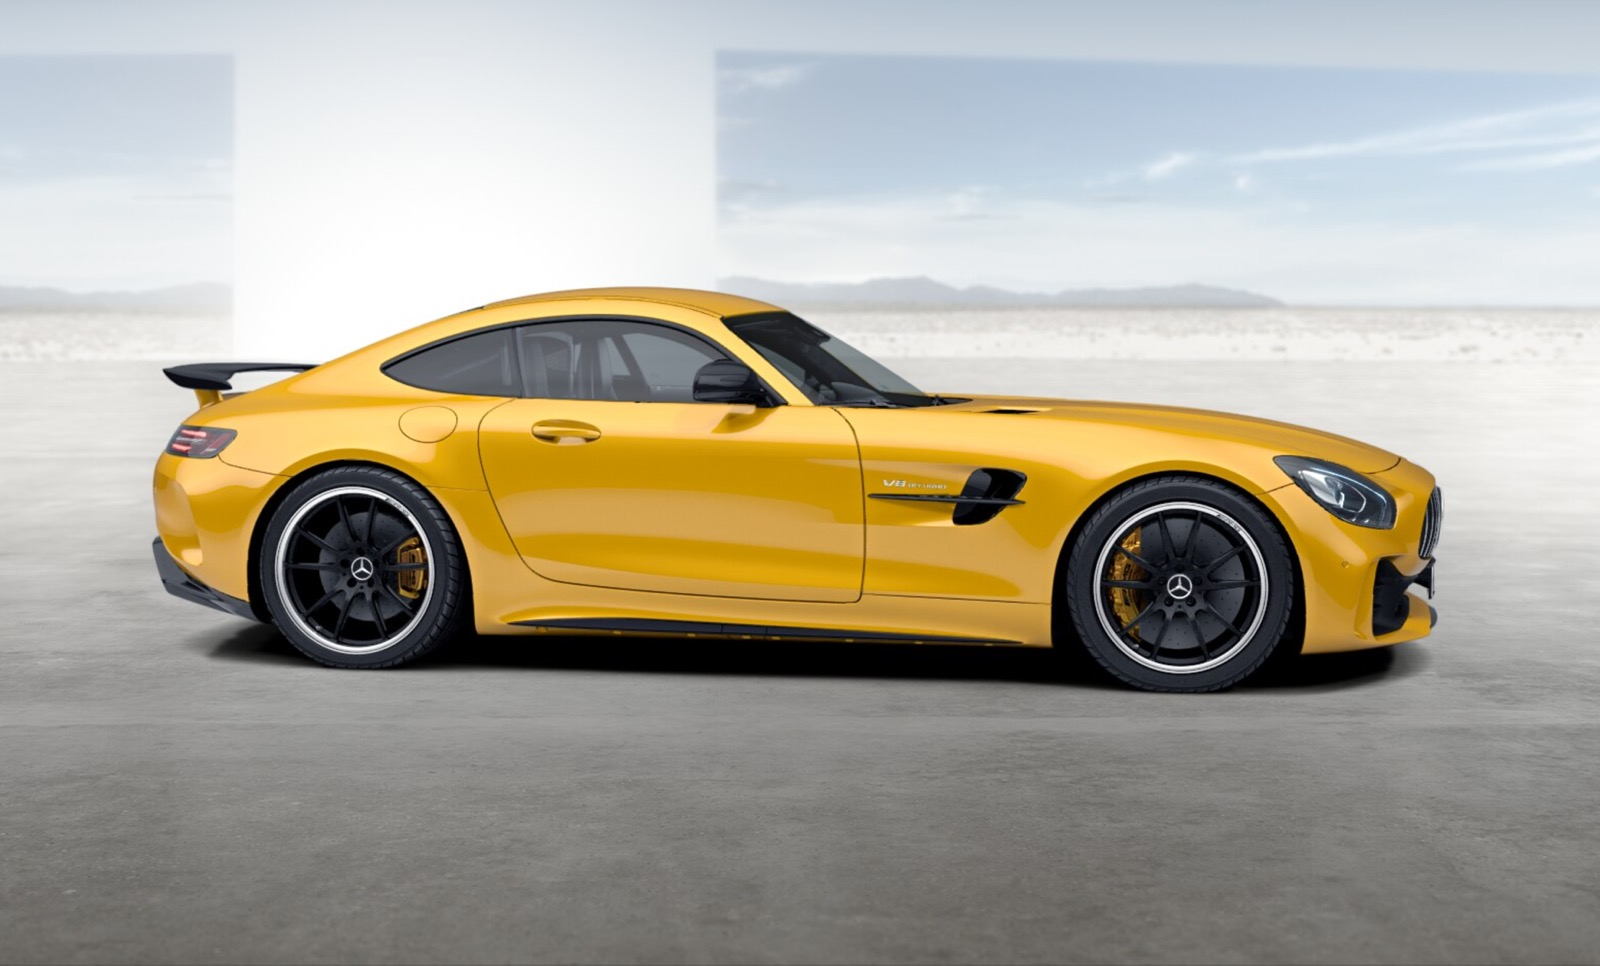 Mercedes Amg Gt R Pricing Revealed Starts At 139 000 Pre Tax